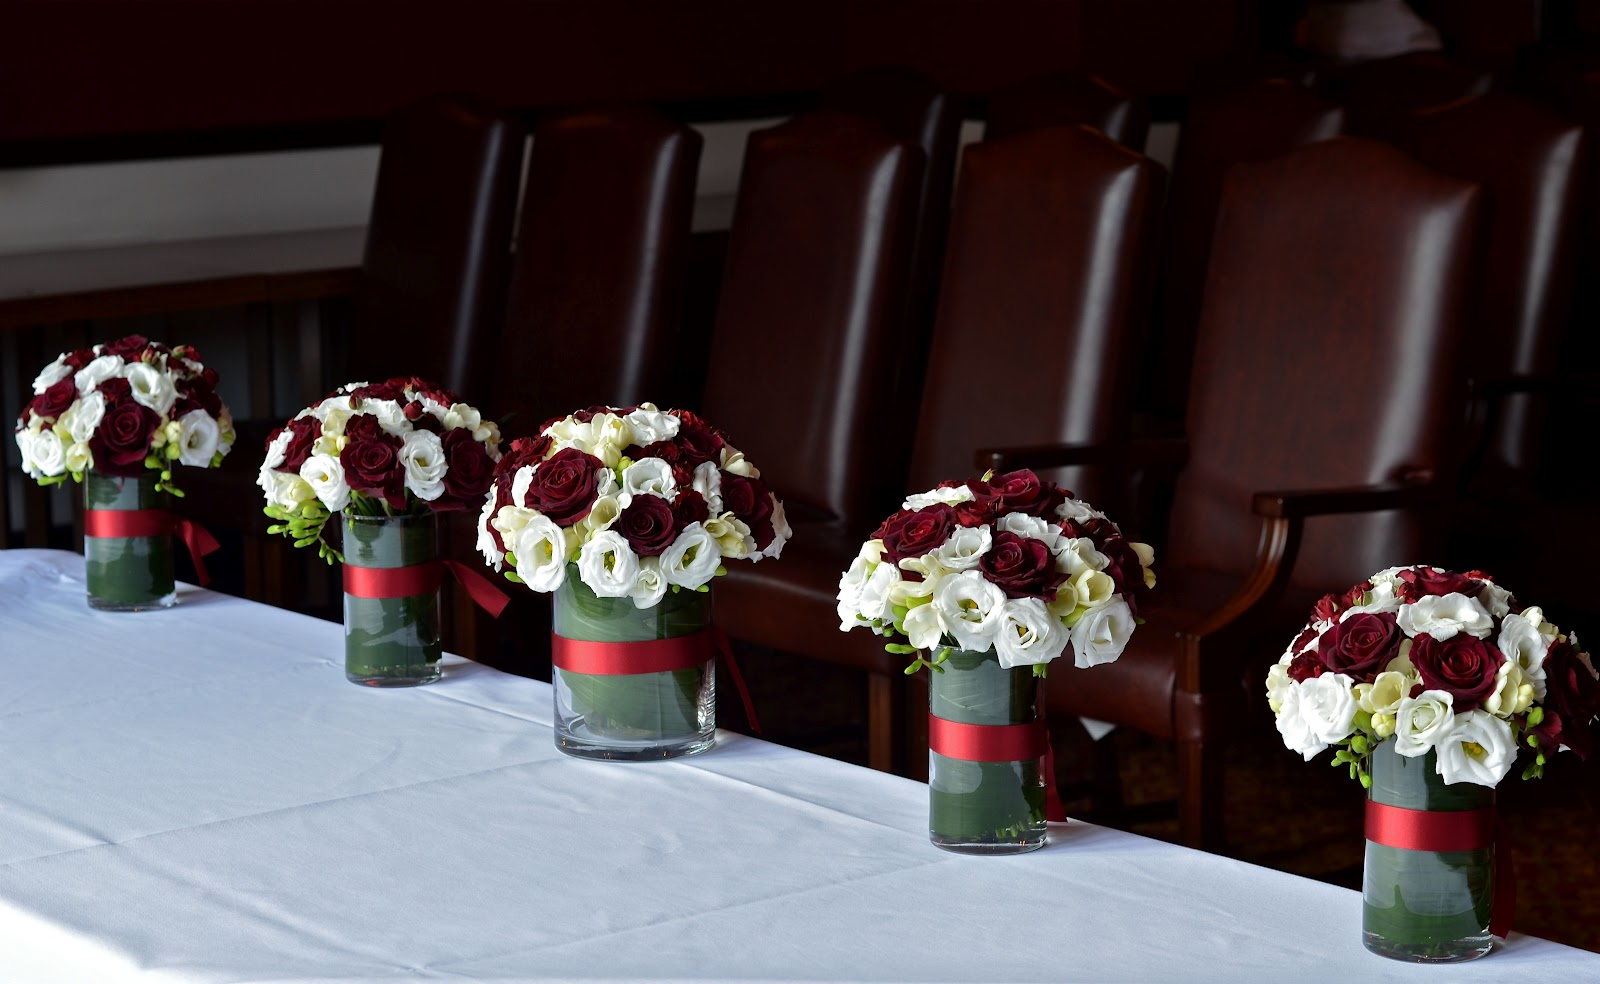 Wedding flowers blog ta 39 s burgundy and white wedding flowers elmers court hotel - Burgundy and white wedding decorations ...